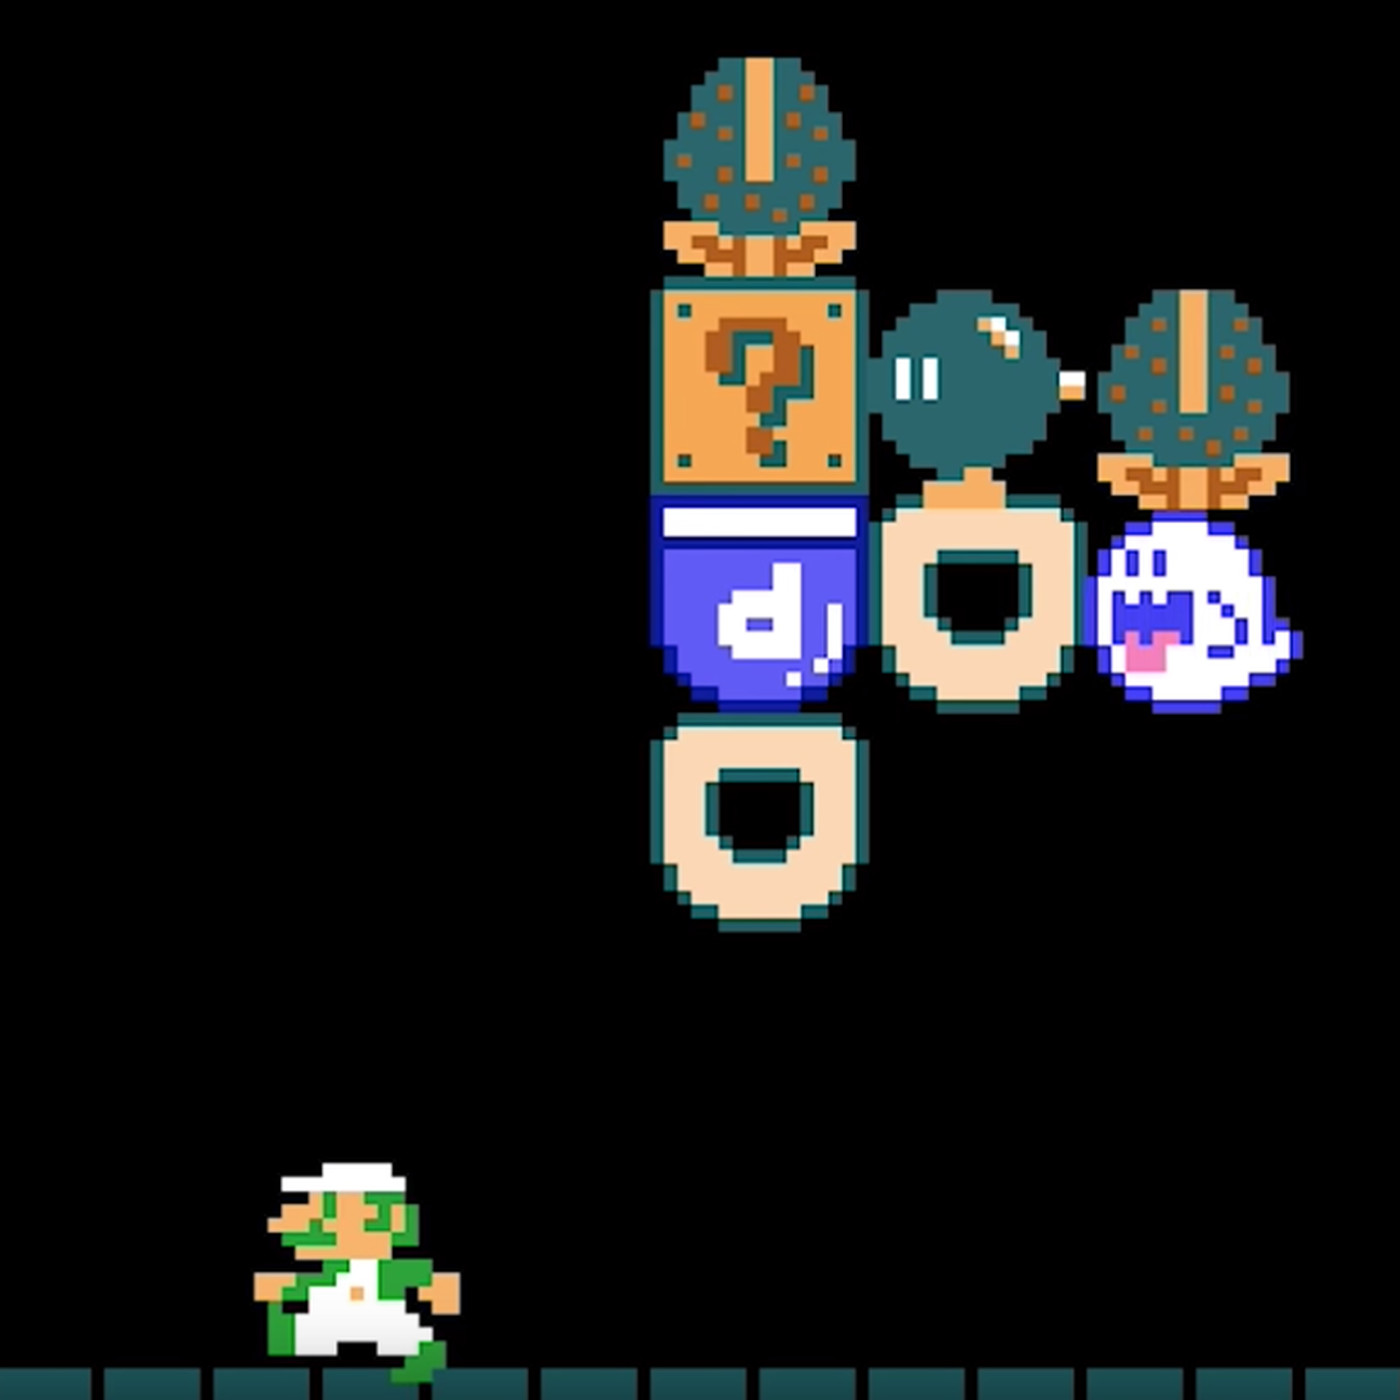 There's no looking back in this Super Mario Maker 2 level